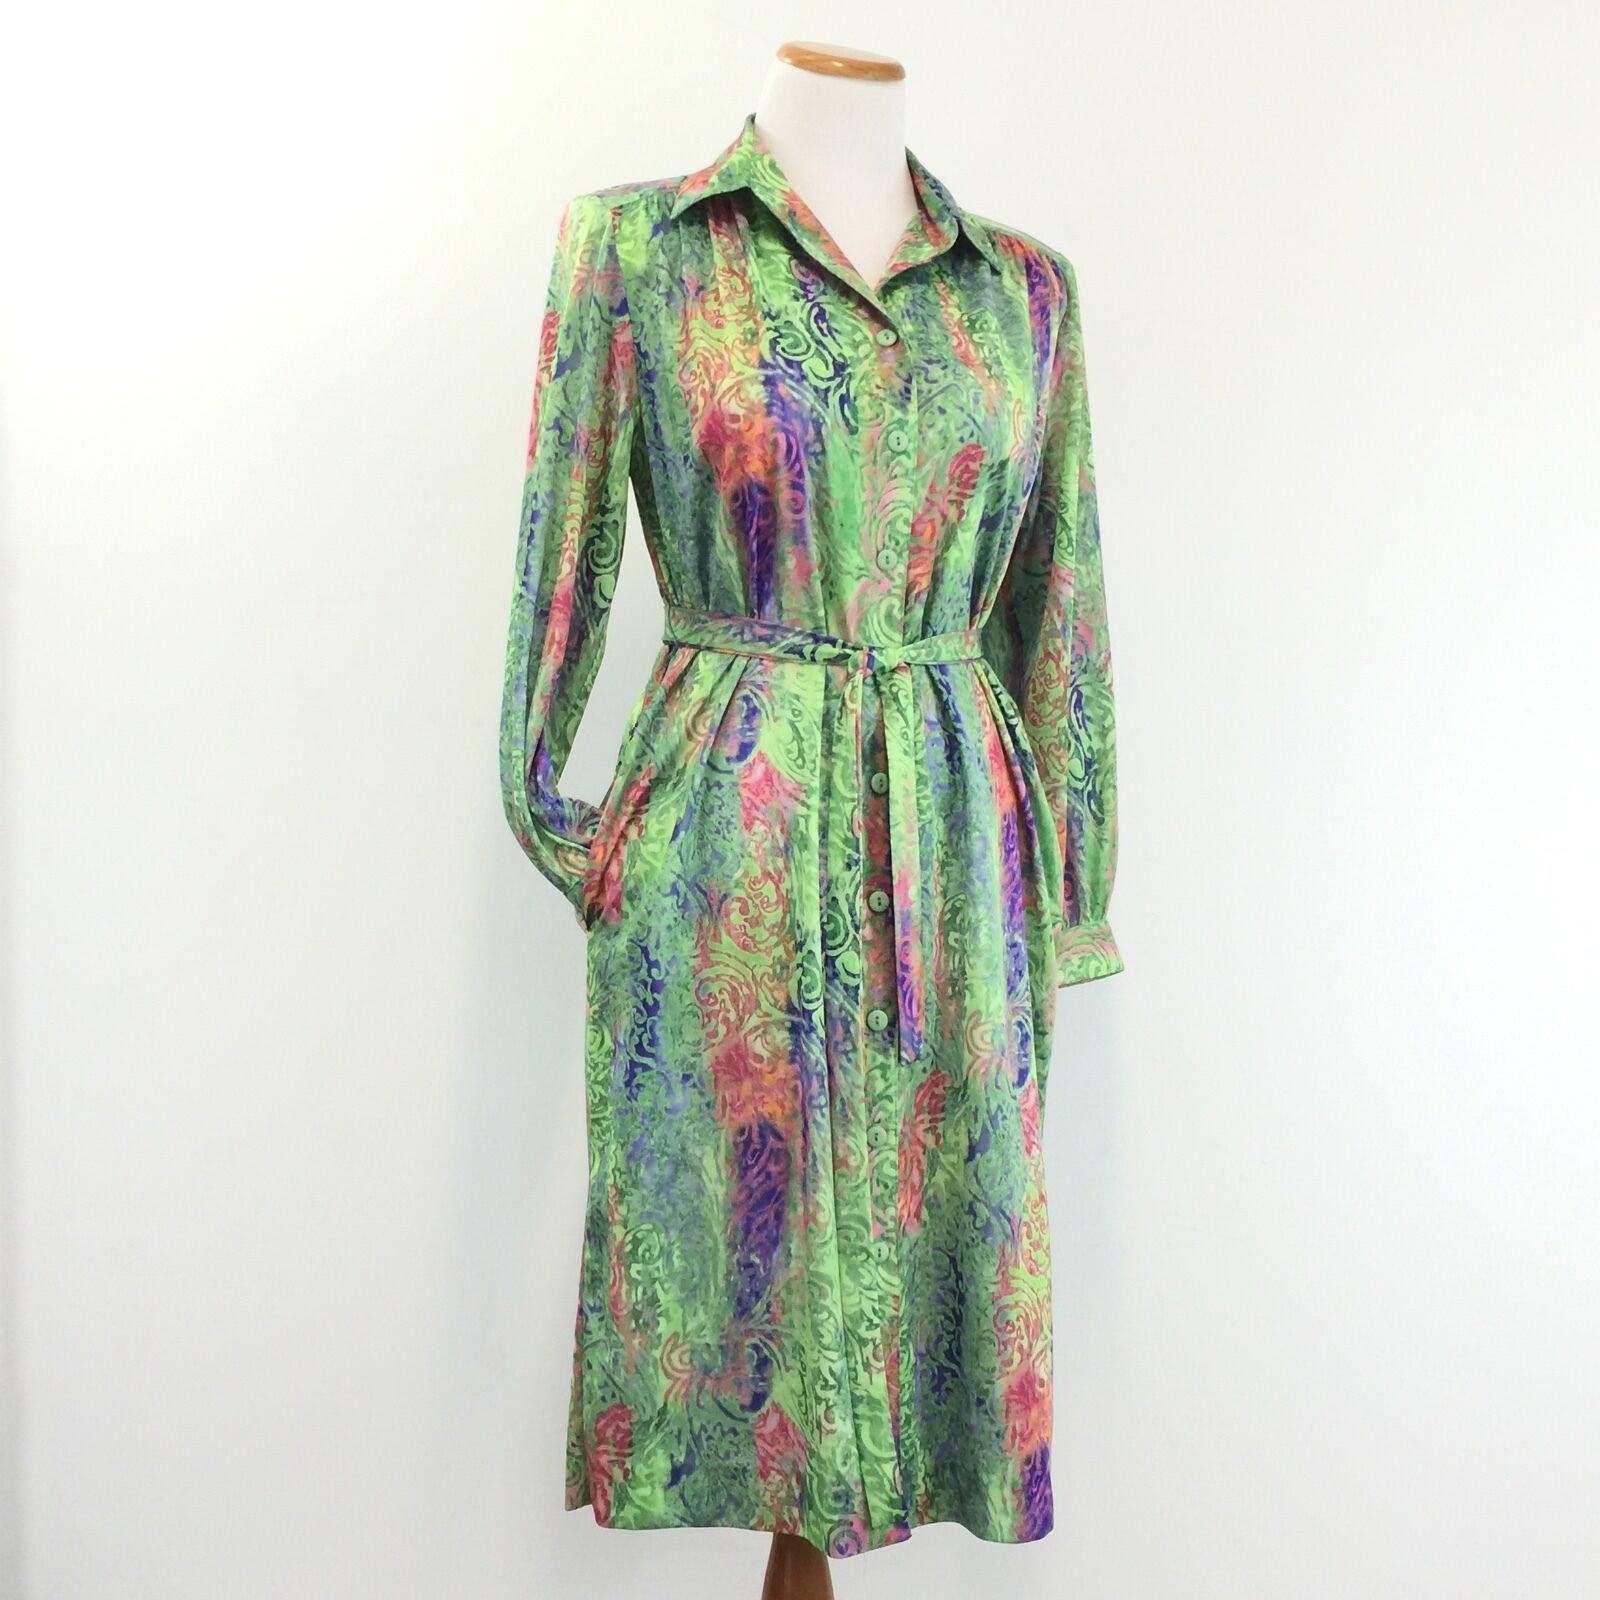 Vtg 70s 80s PETITES BY WILLI Shirt Dress Belted Button Front Made In USA Größe 10